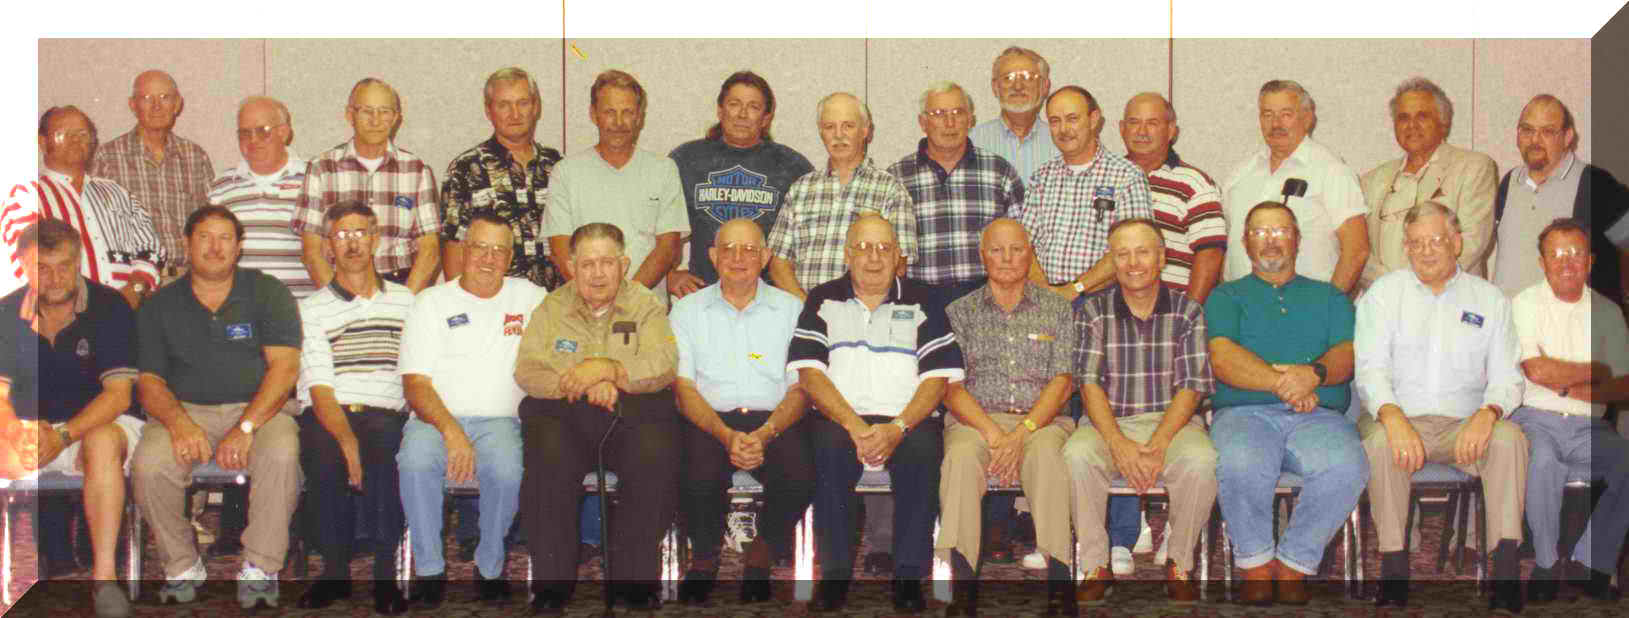 1998 Reunion (GROUP).jpg (97112 bytes)